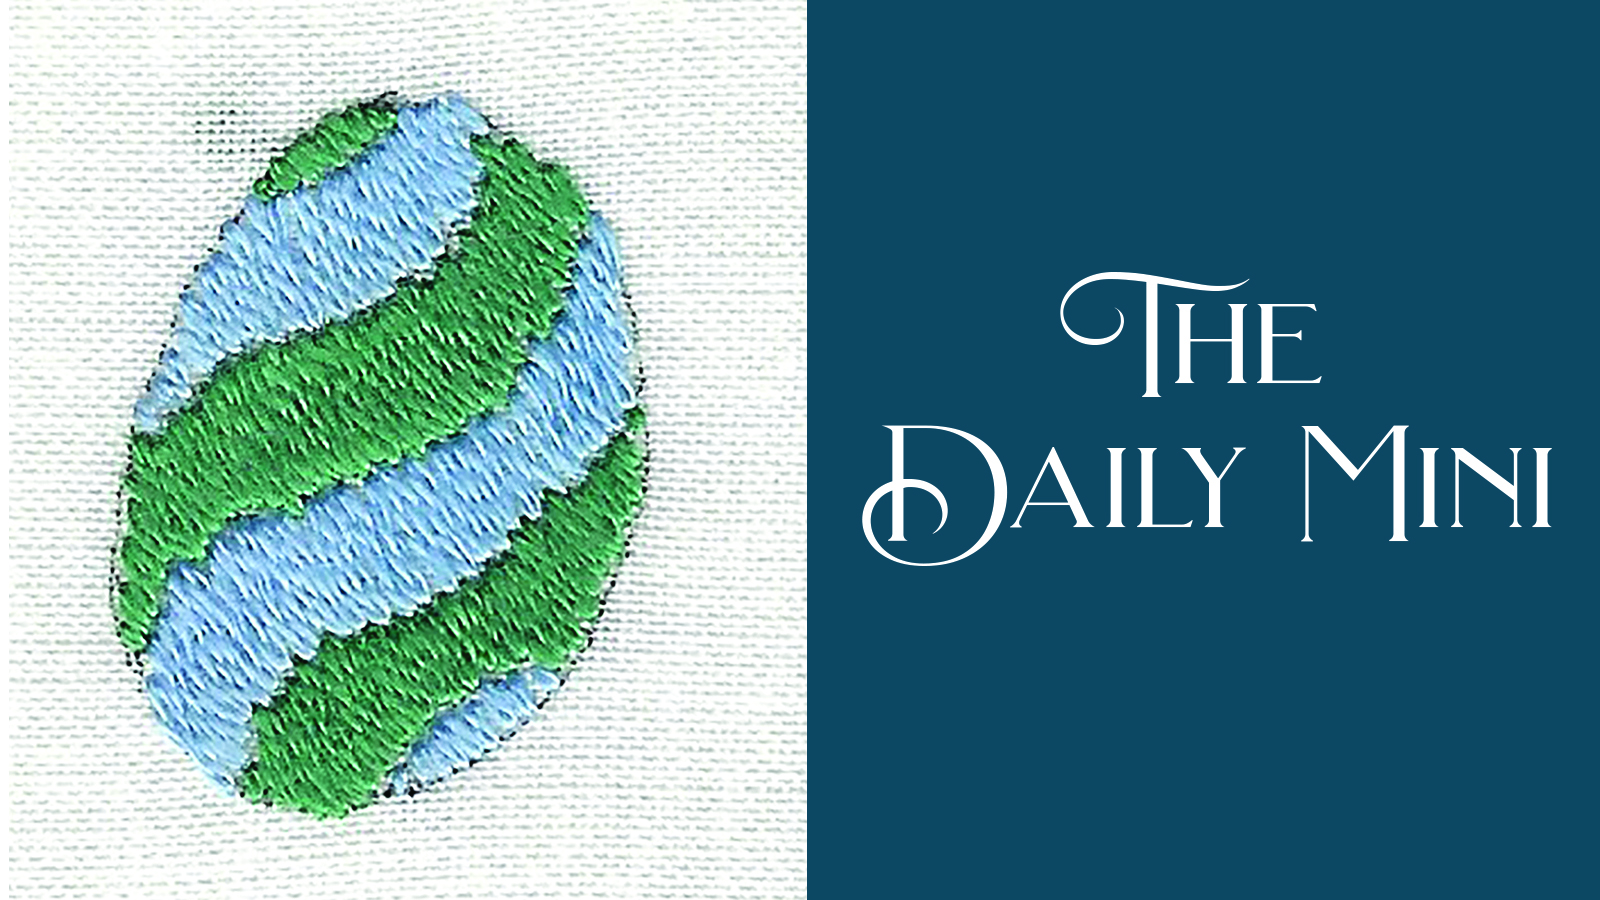 Daily Mini announcement with embroidered Easter egg with wavy green and blue stripes in satin stitch.